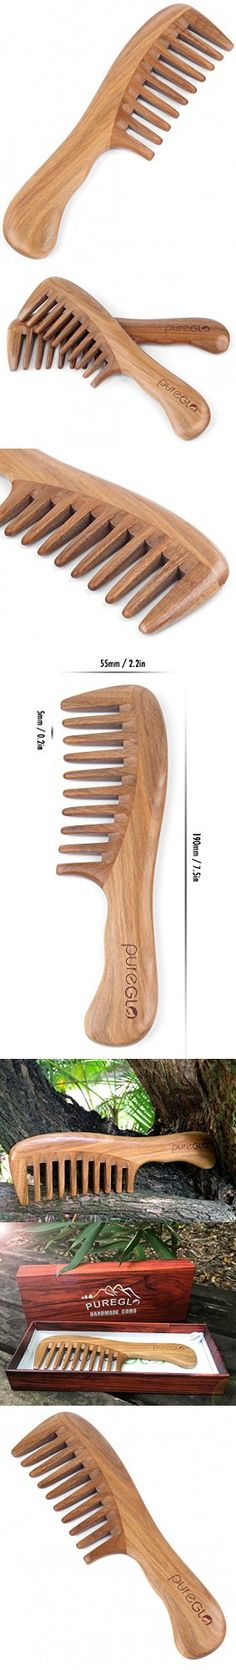 PureGLO Wood Hair Comb - Green Sandalwood Handmade Wide Tooth Wooden Thinning Combs with Natural Aroma for Detangling Thick Curly Hair